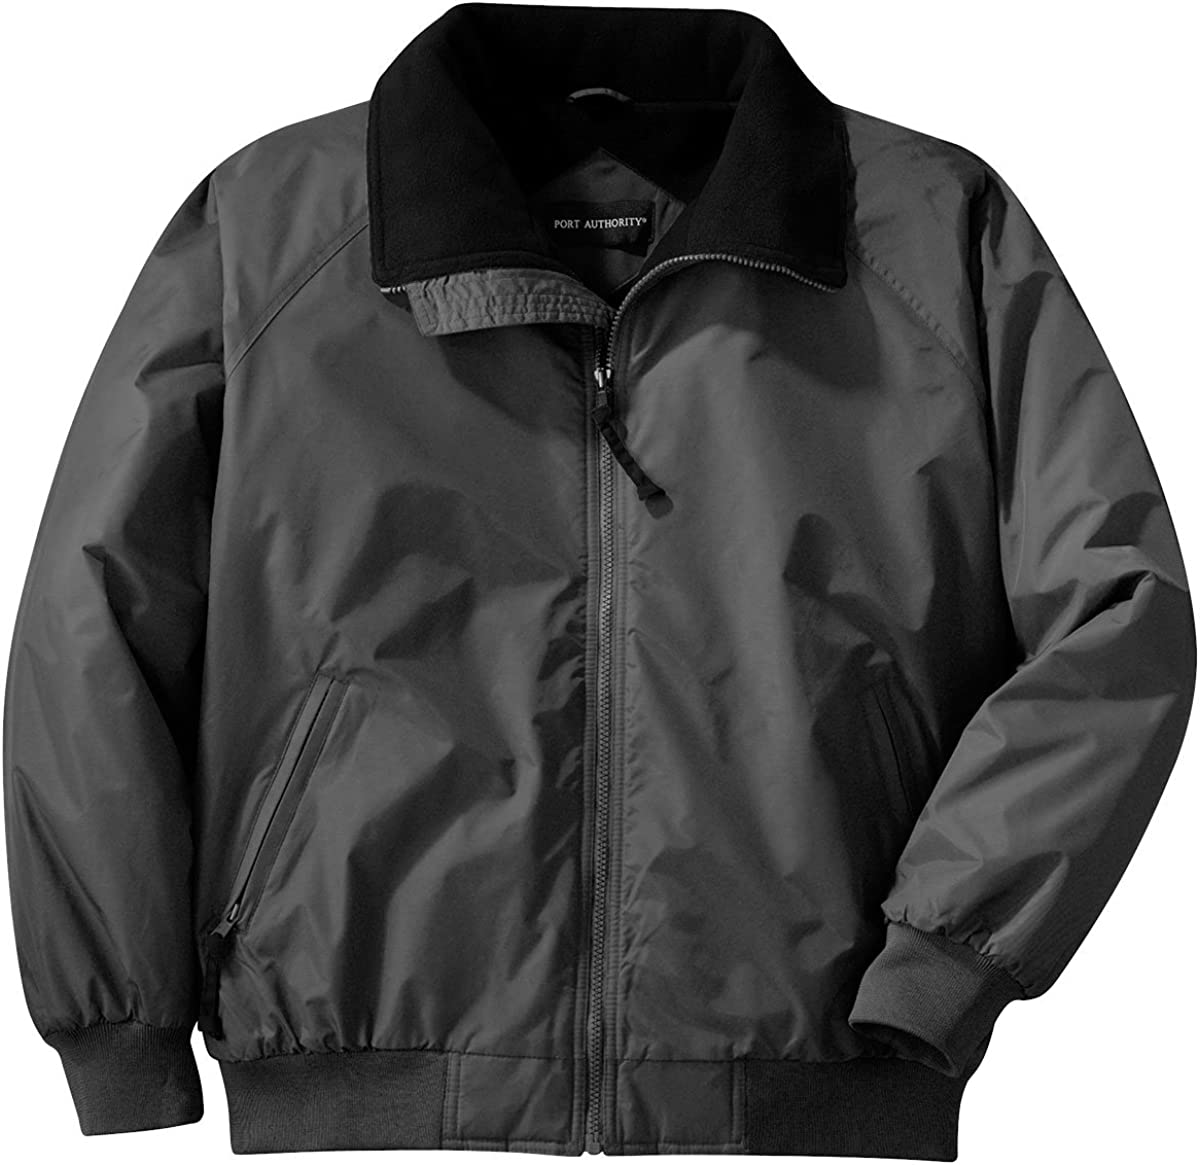 Max 88% OFF Port Authority Challenger Max 71% OFF Jacket